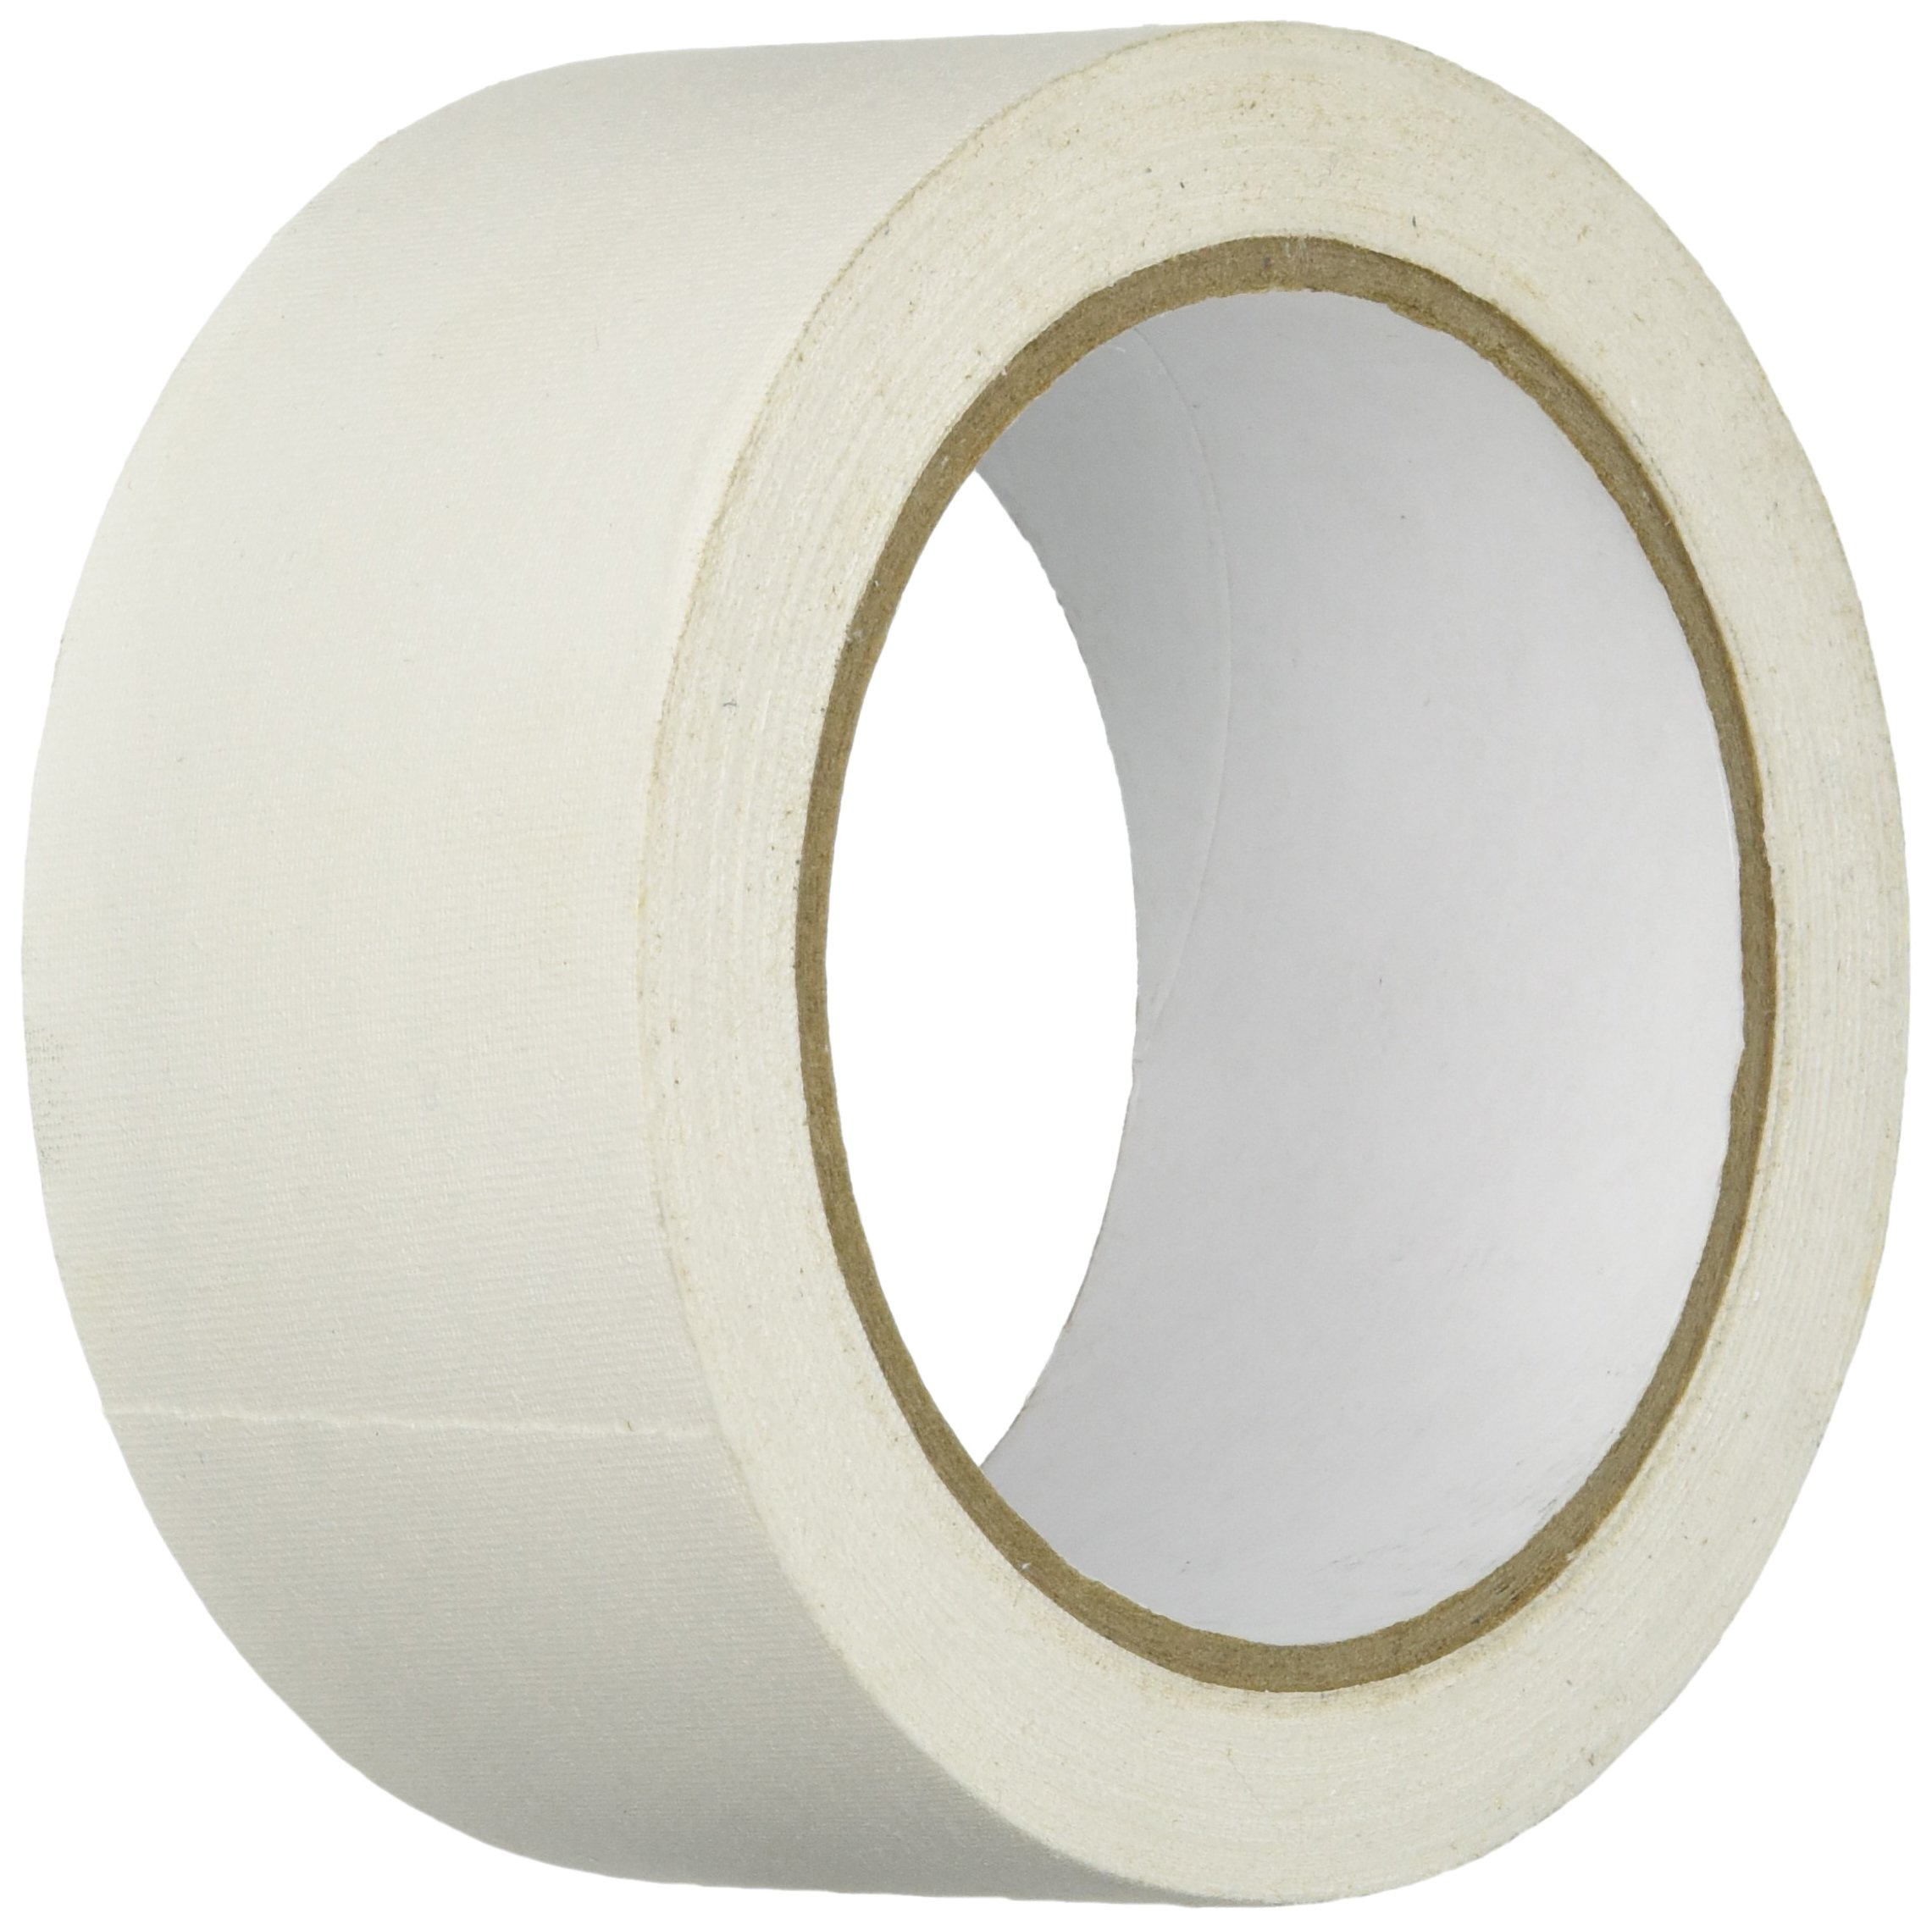 Amazon com book repair tape 2 inch wide self adhesive white arts crafts sewing